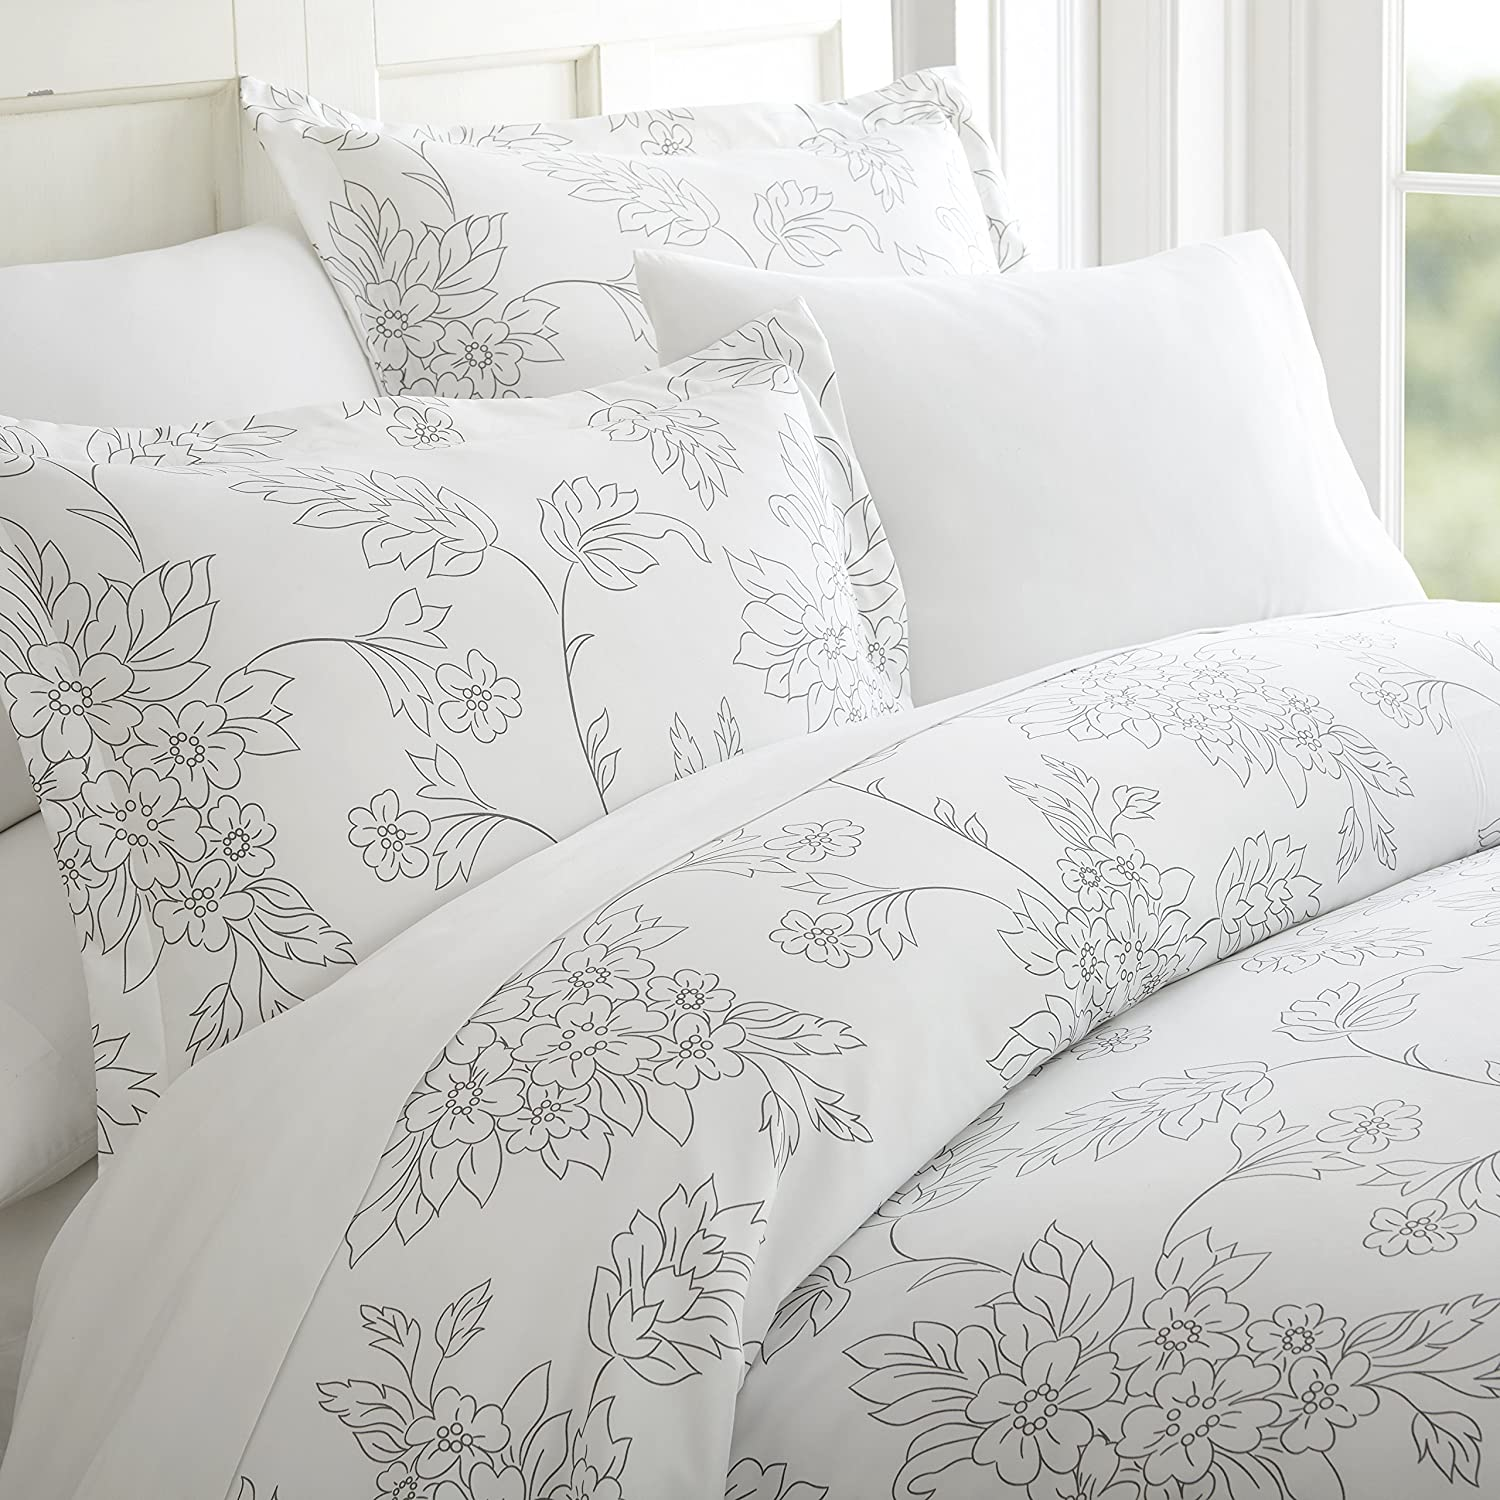 Becky Cameron Duvet Cover Set Vine Patterned, Twin, Gray